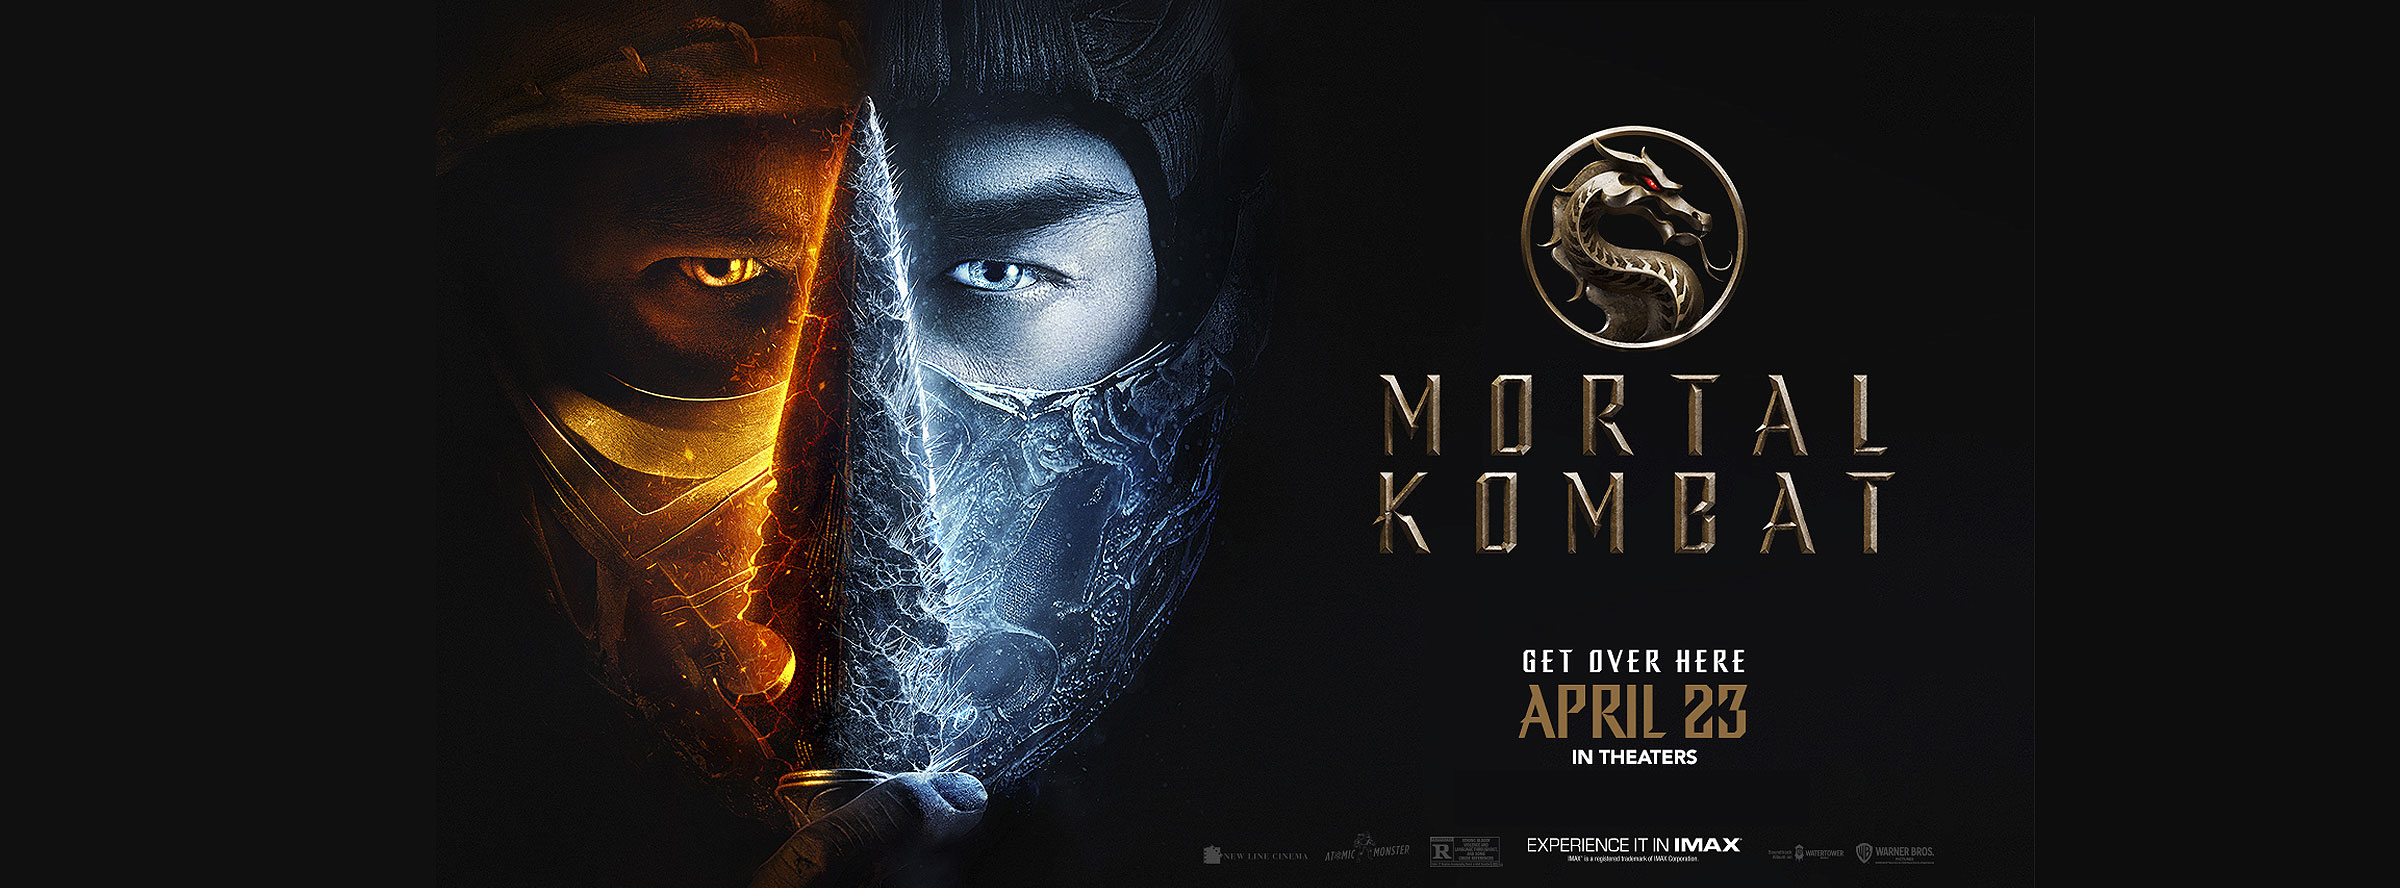 Slider Image for Mortal Kombat